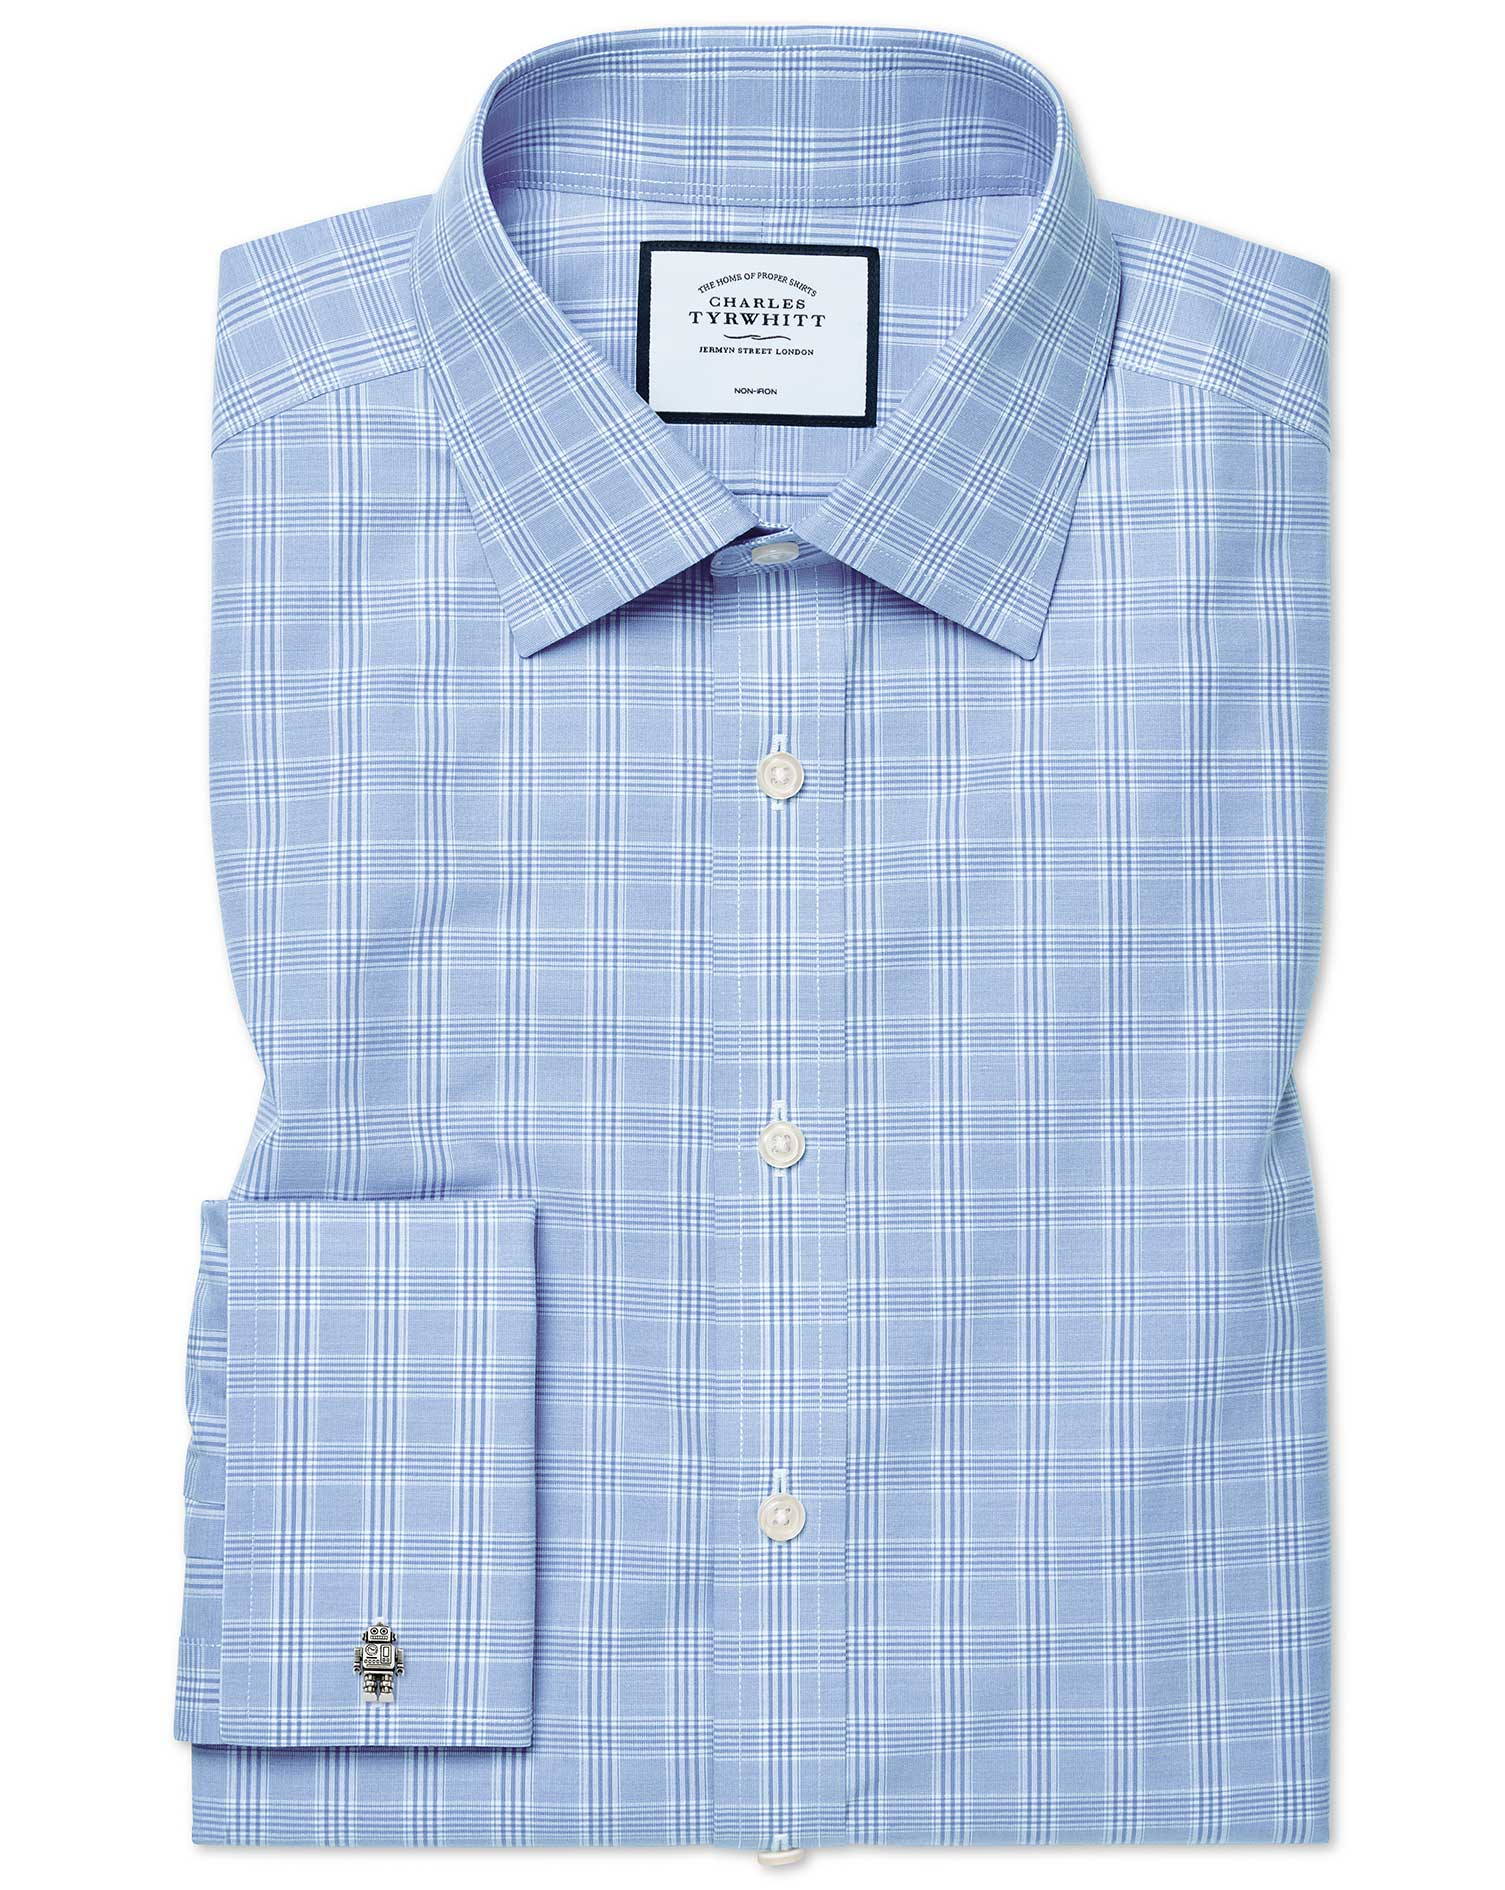 Classic Fit Non-Iron Sky Blue Prince Of Wales Check Cotton Formal Shirt Double Cuff Size 15.5/34 by